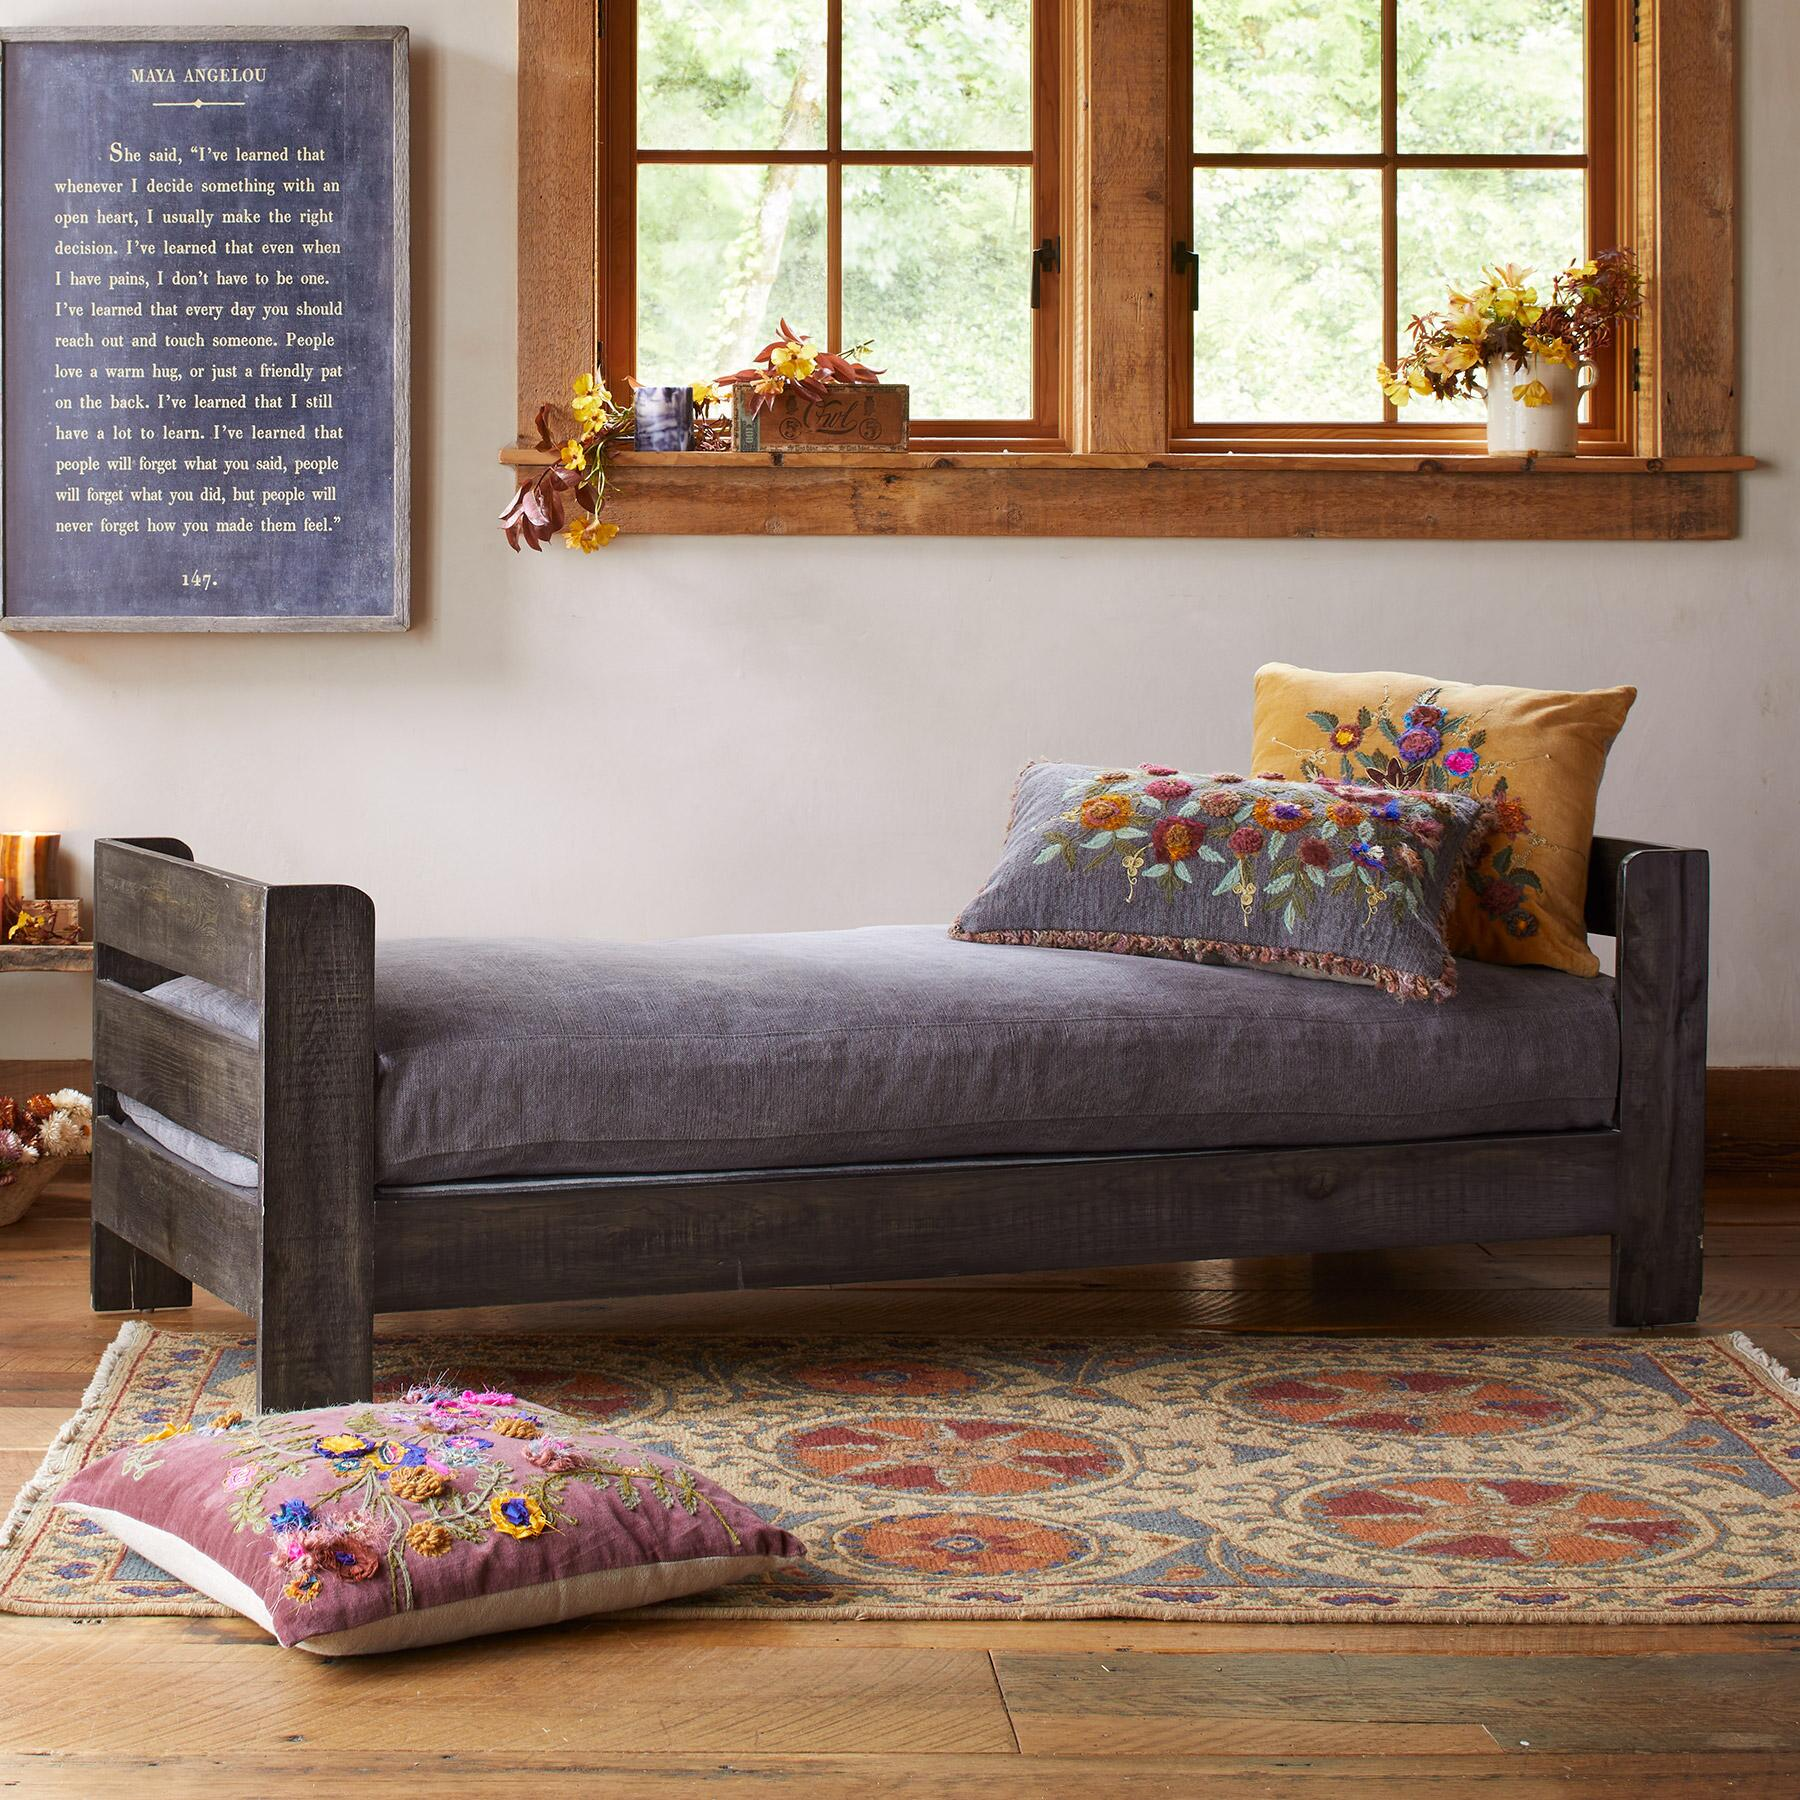 FAVORITE DAY BED SLIPCOVER AND PILLOWS: View 1